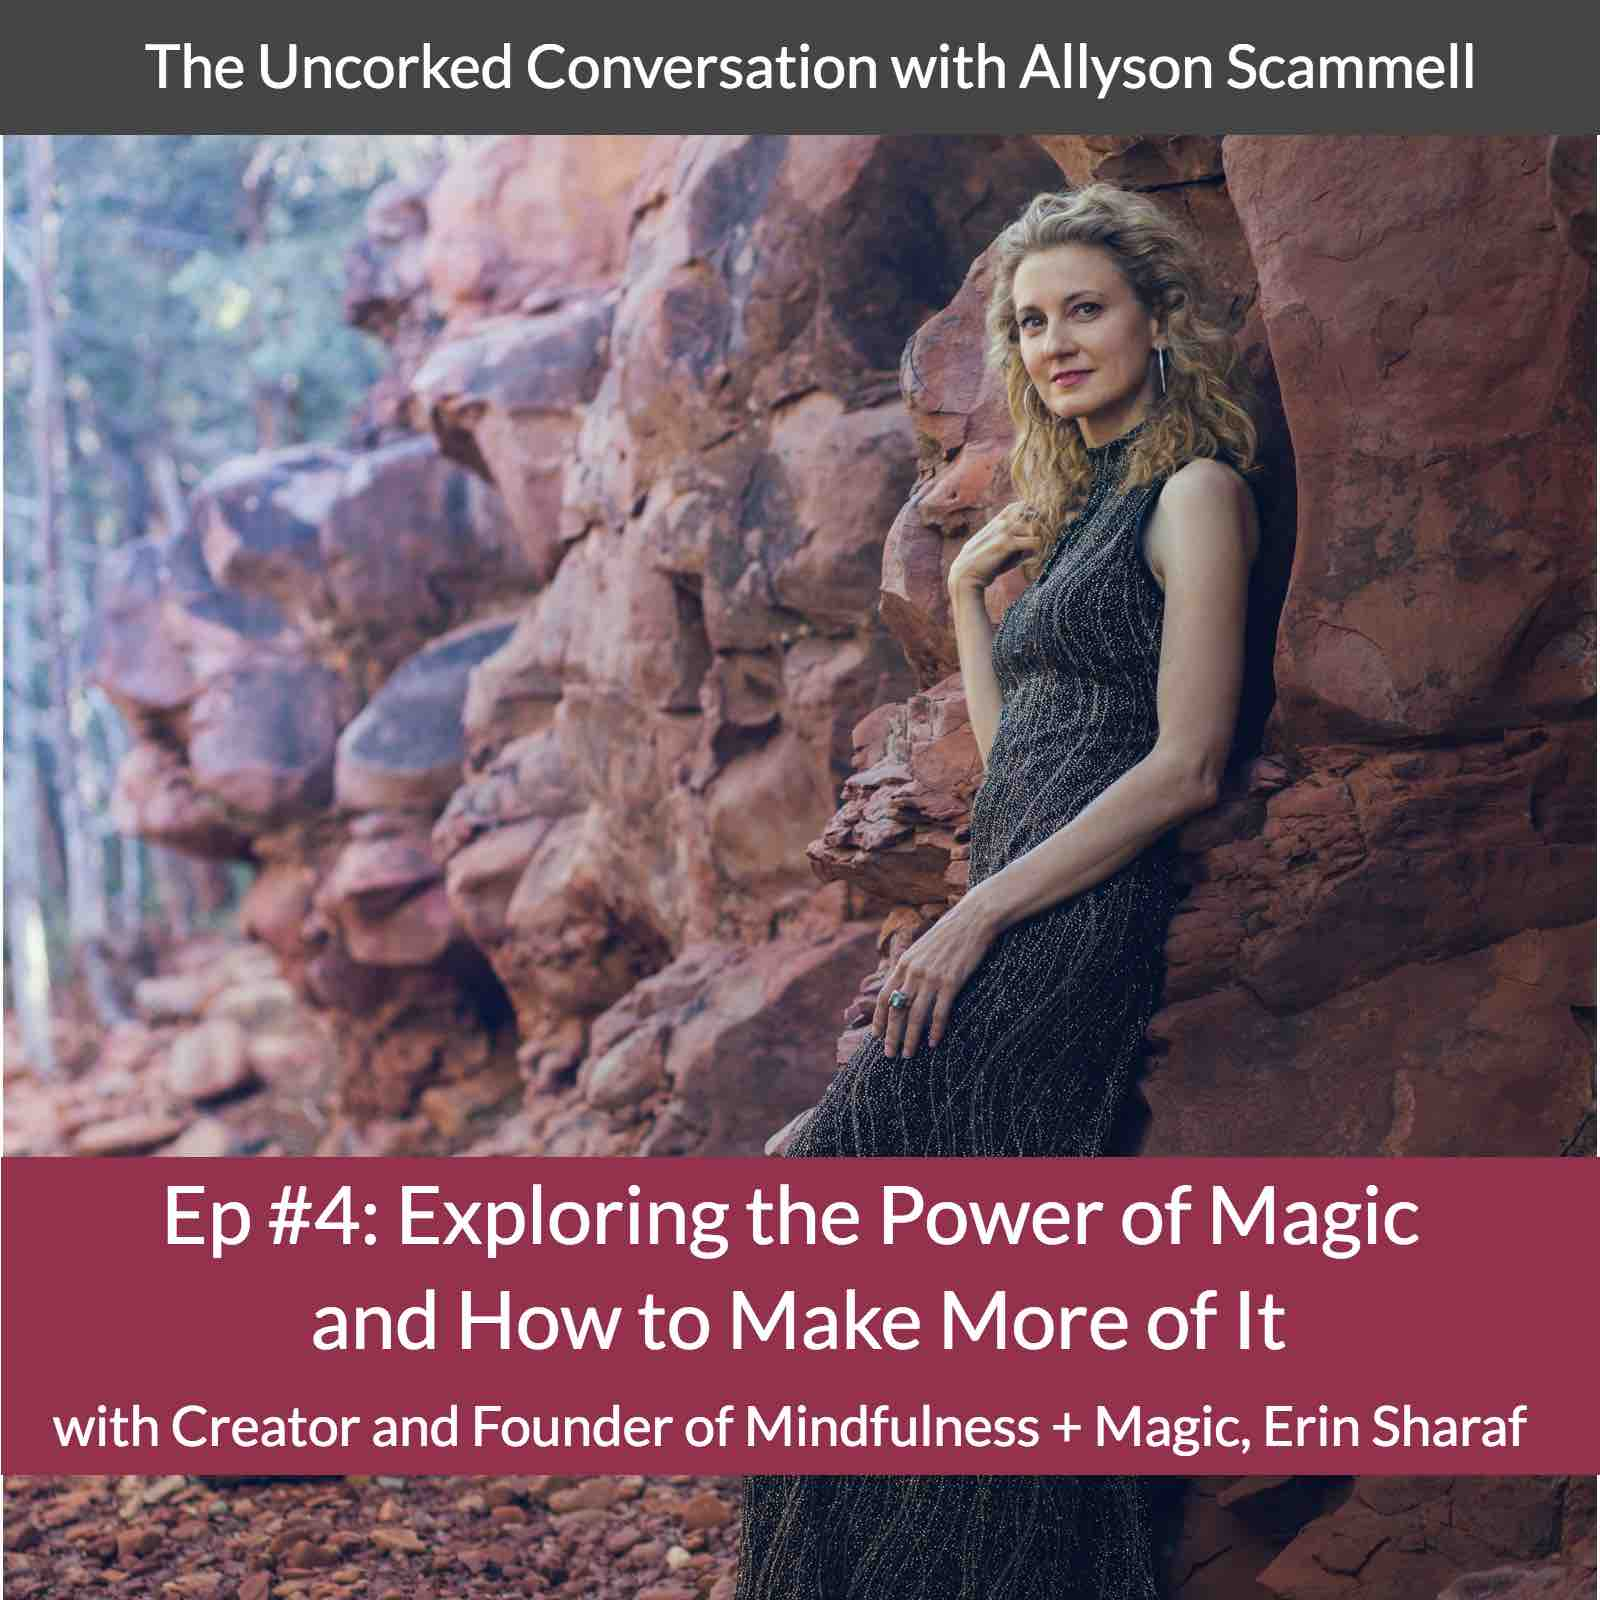 Ep #4: Exploring the Power of Magic + How to Make More Of It